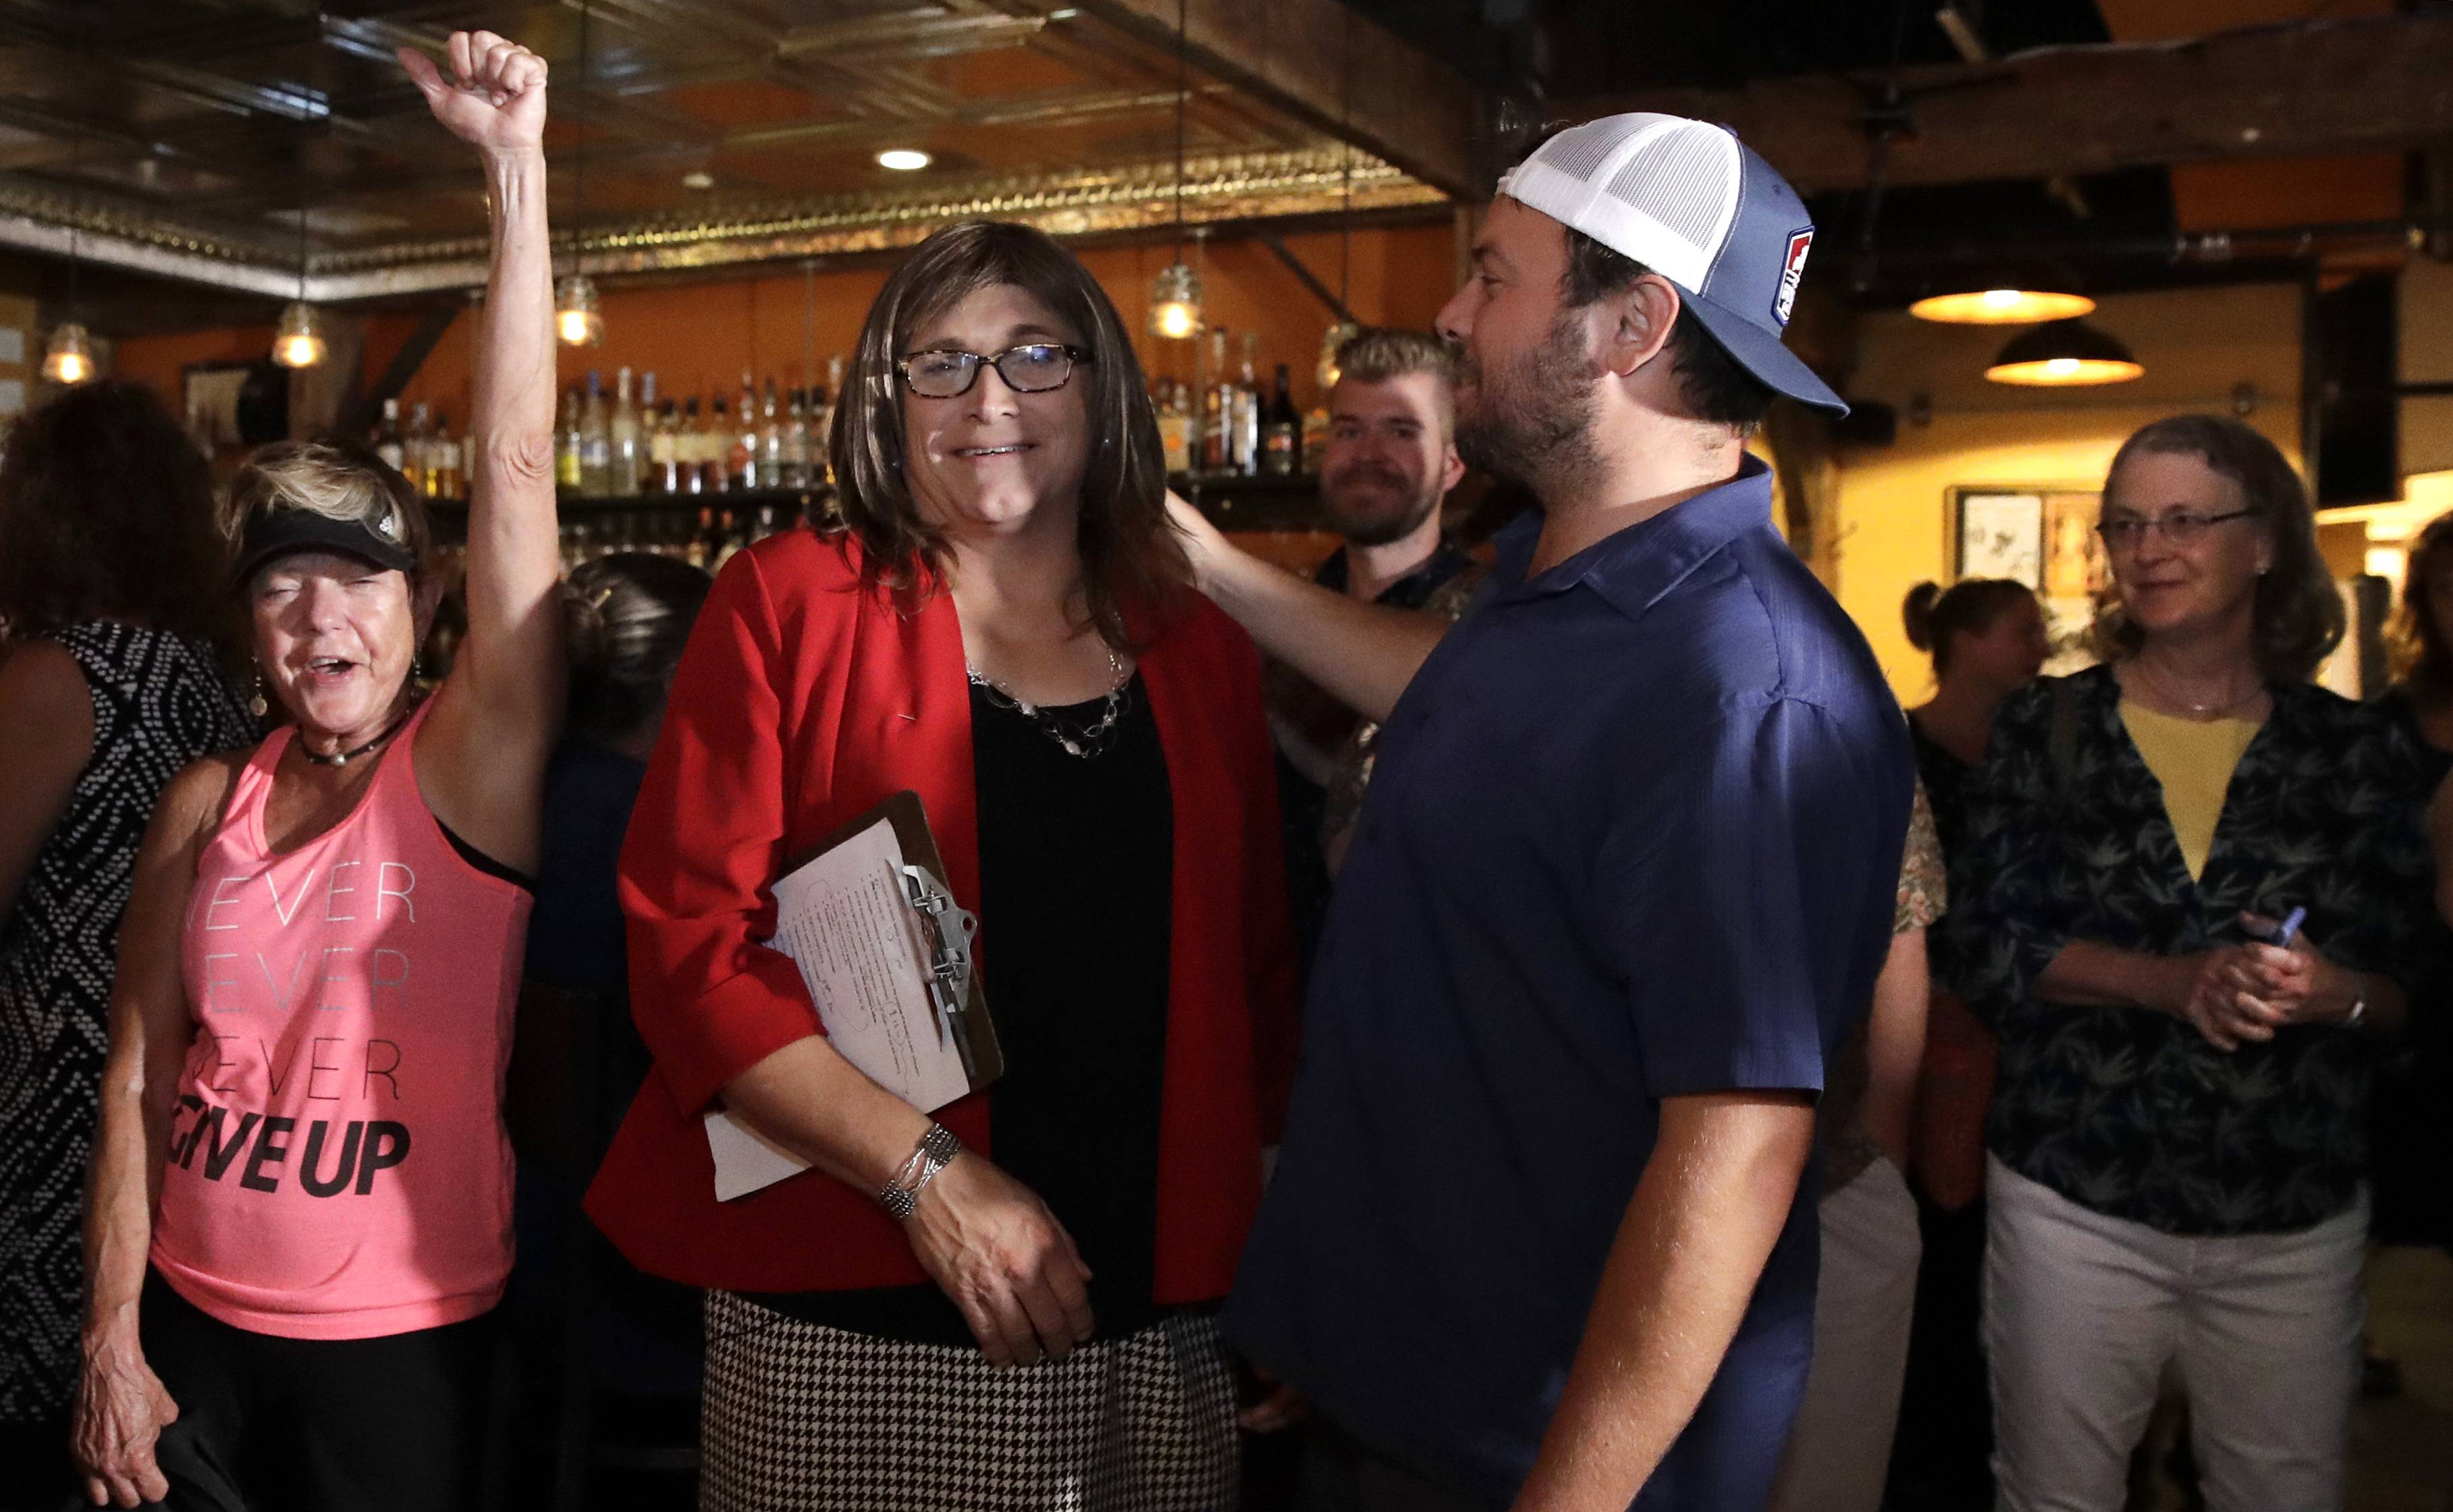 Vermont Democratic gubernatorial candidate Christine Hallquist, center, a transgender woman and former utility executive, is greeted by her supporters during her election night party in Burlington, Vt., Tuesday, Aug. 14, 2018. (AP Photo/Charles Krupa)